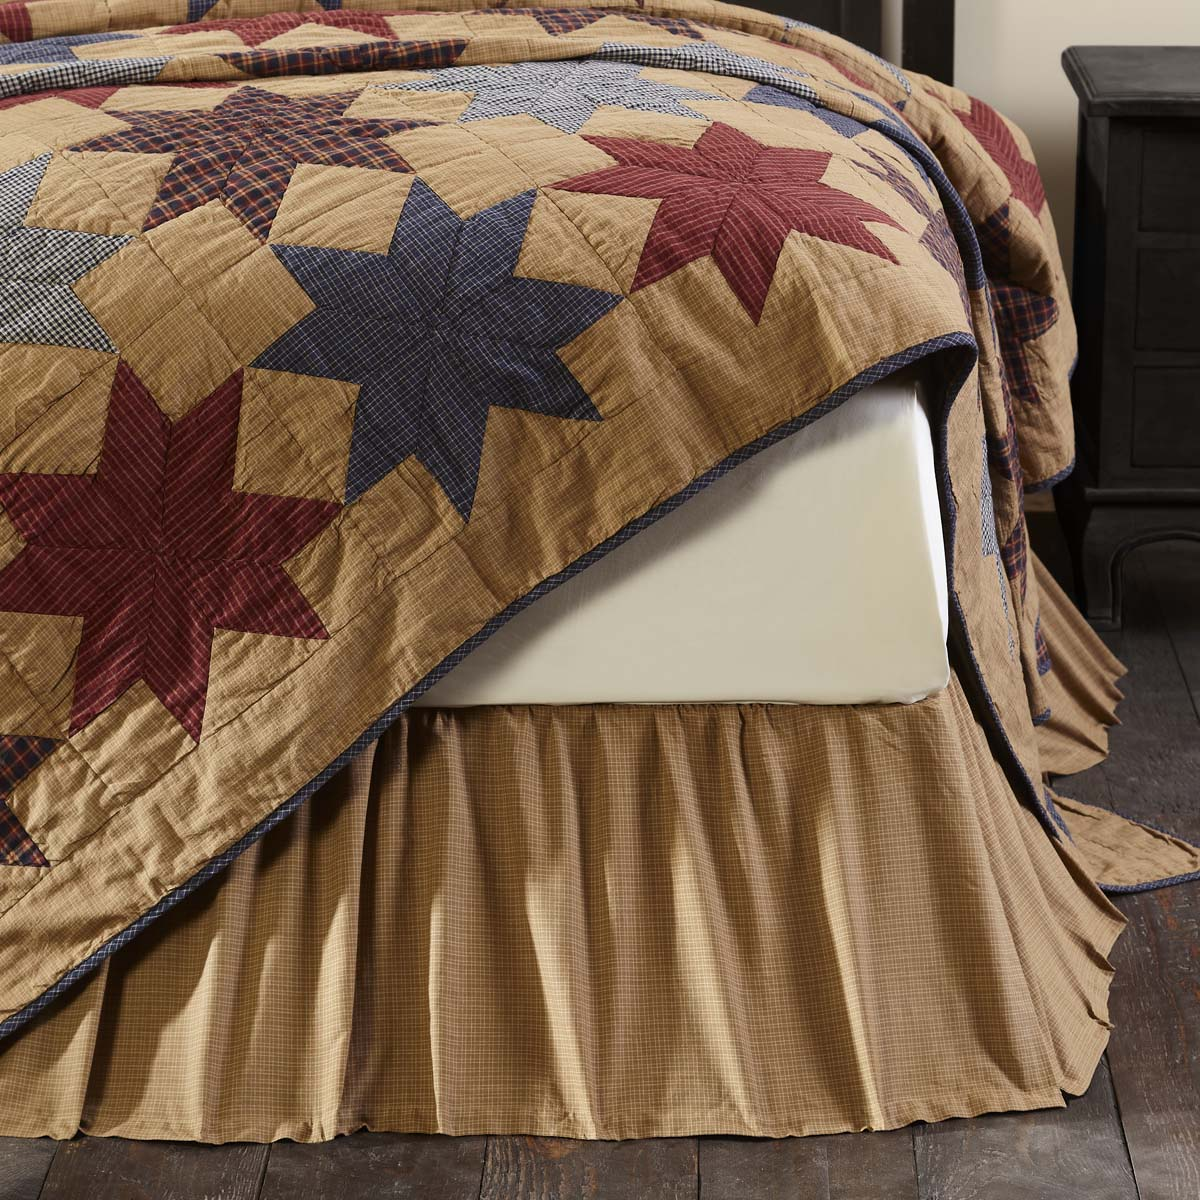 Kindred Star Queen Bed Skirt 60x80x16